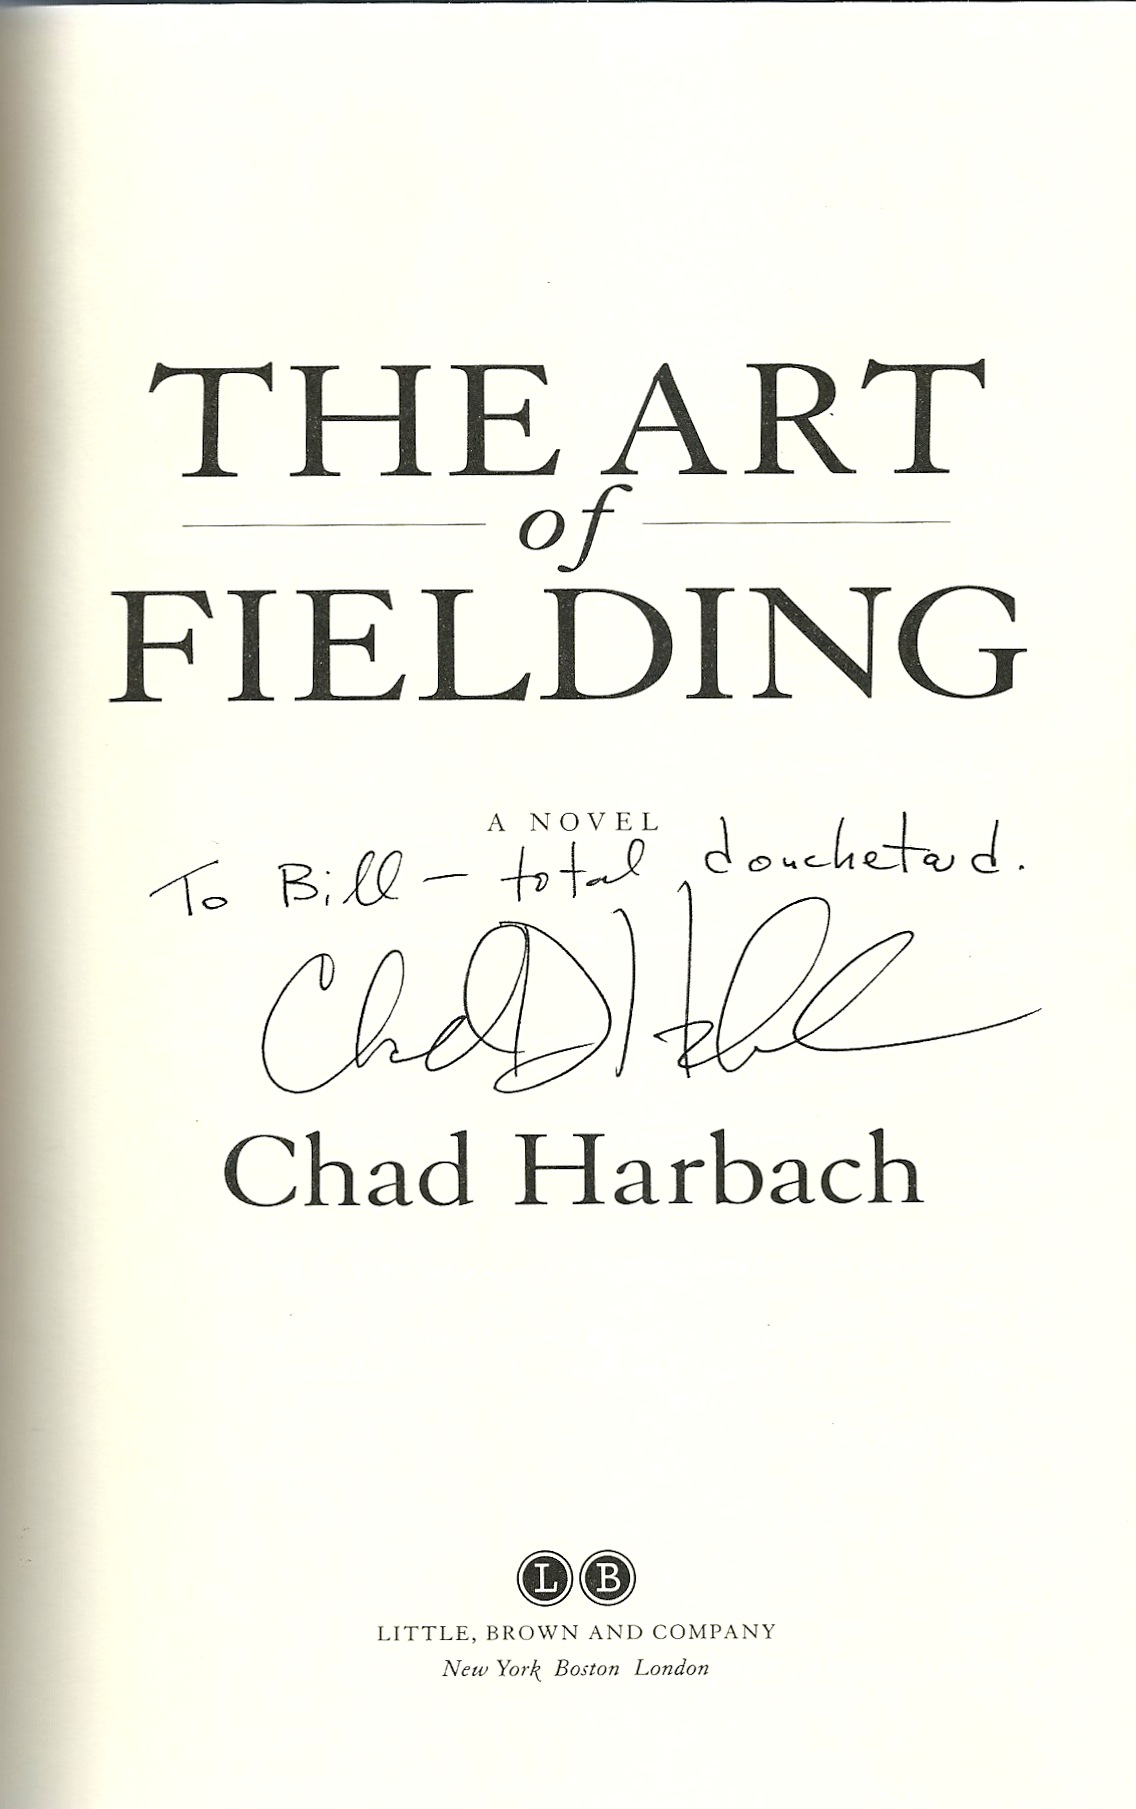 Chad Harbach first novel